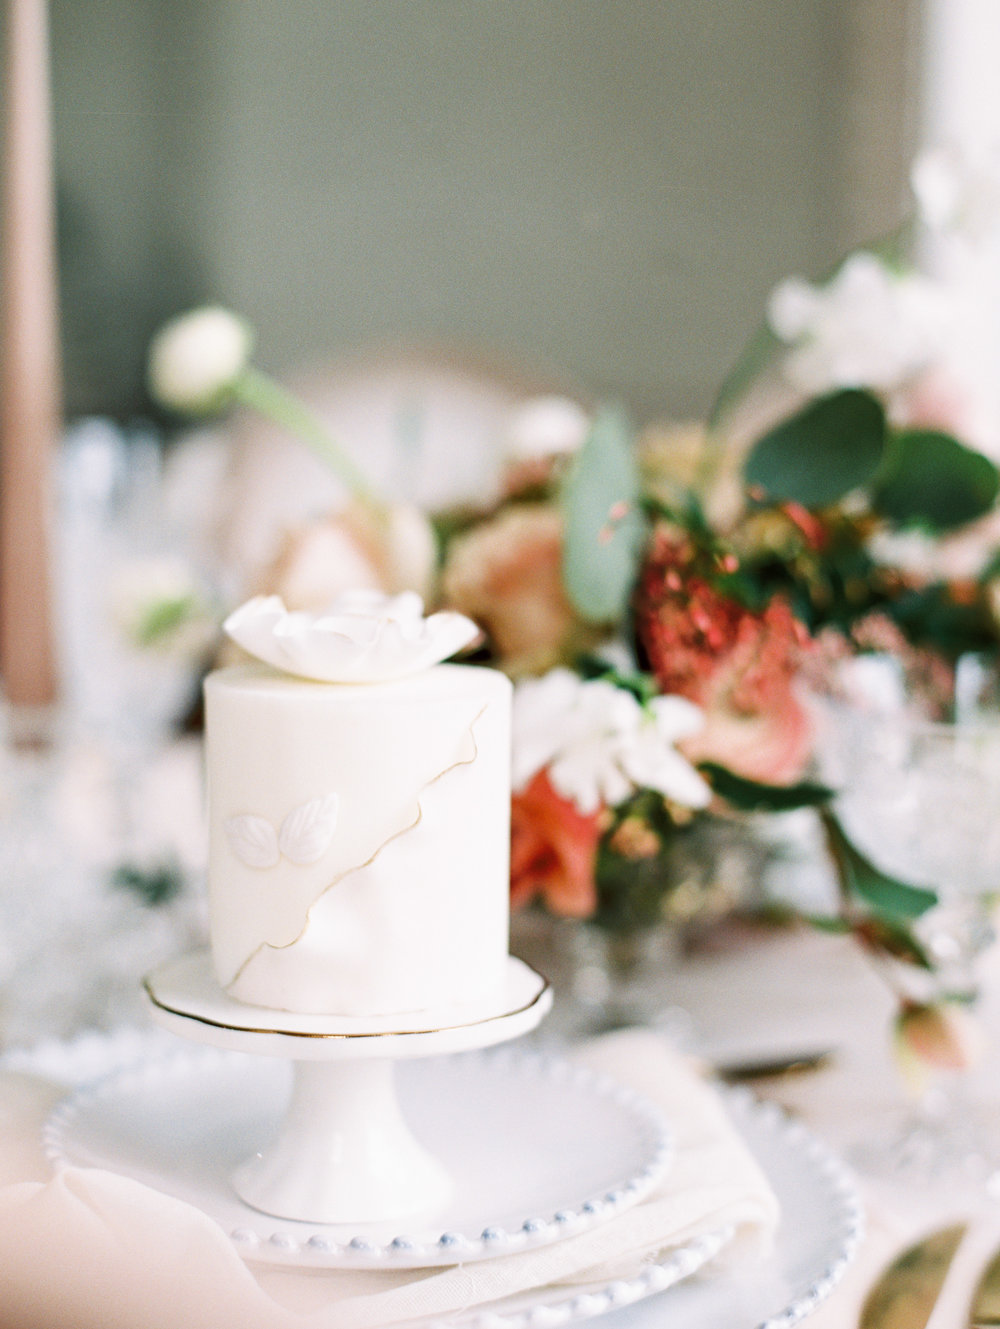 The Timeless Stylist-Elegant and Romantic Wedding Styling-Mini Wedding Cakes Favours